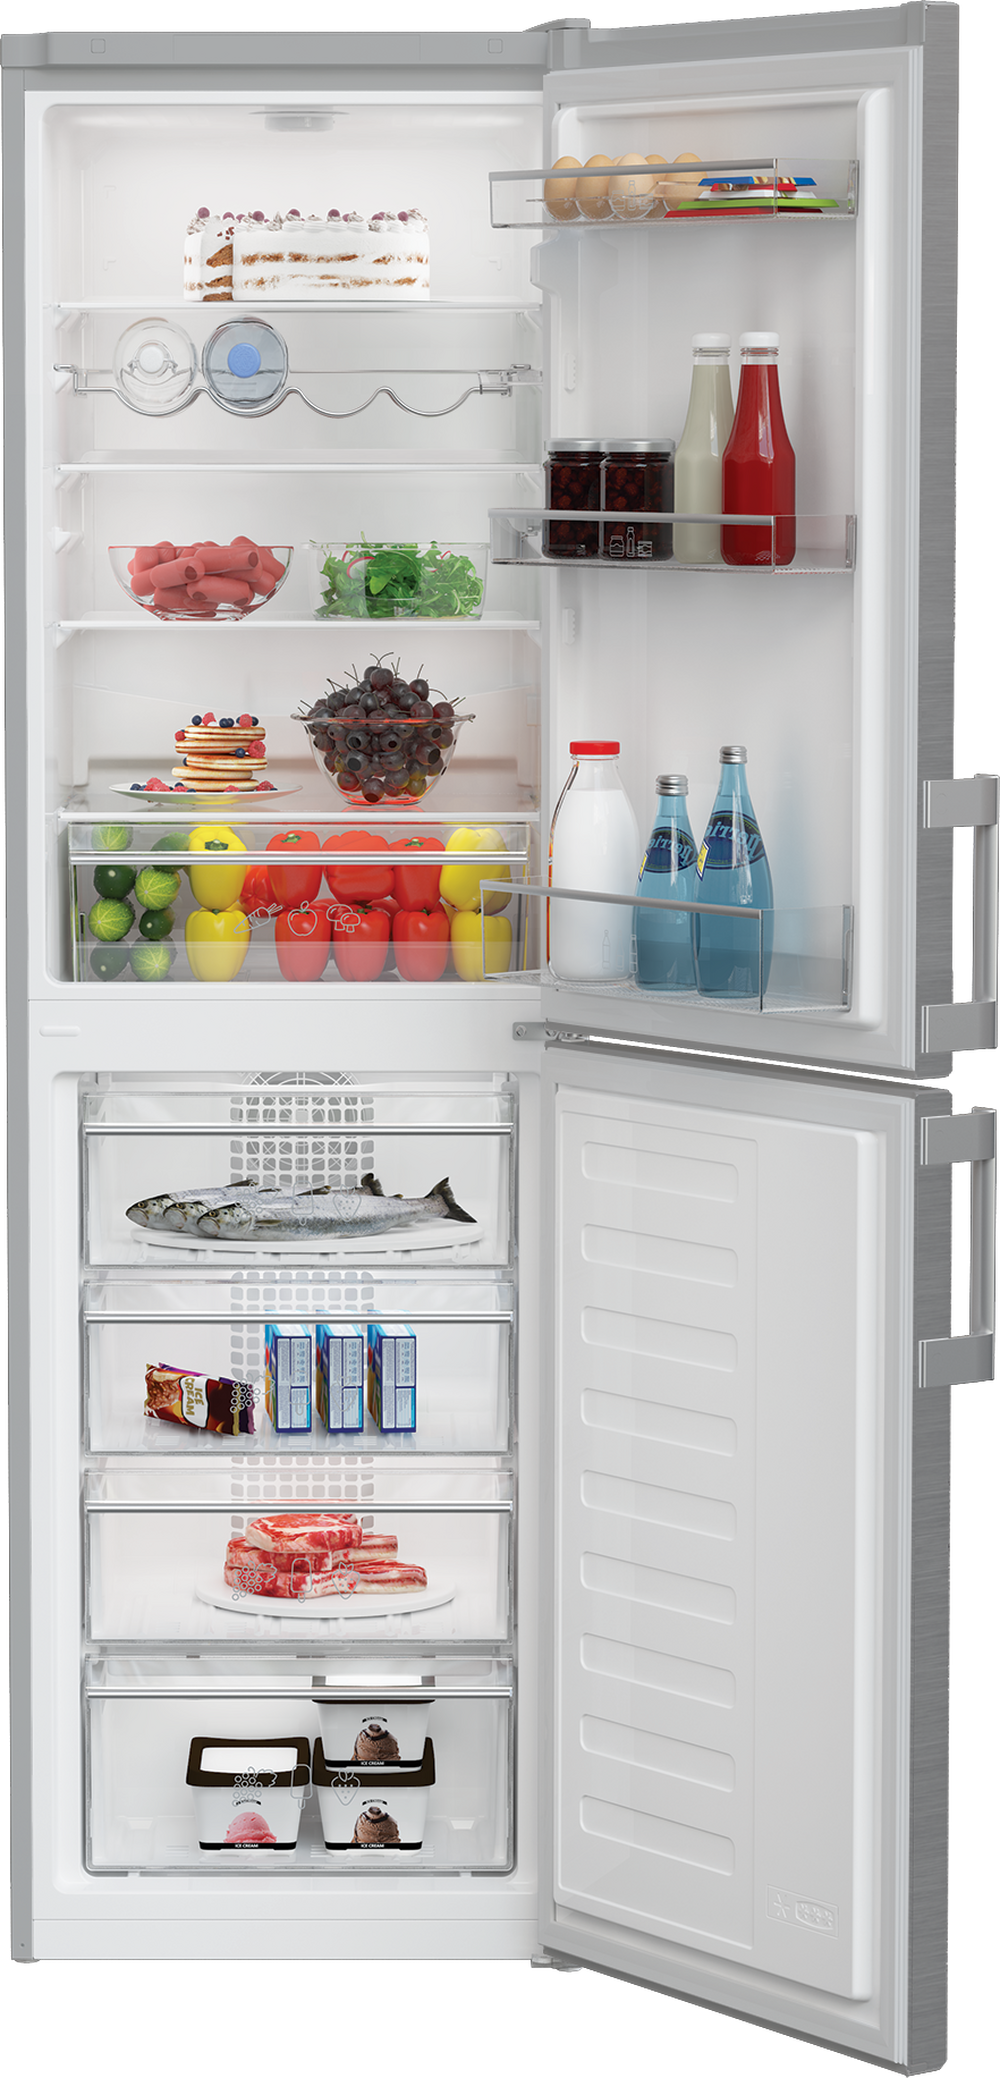 Blomberg Fridge Freezer in Stainless Steel